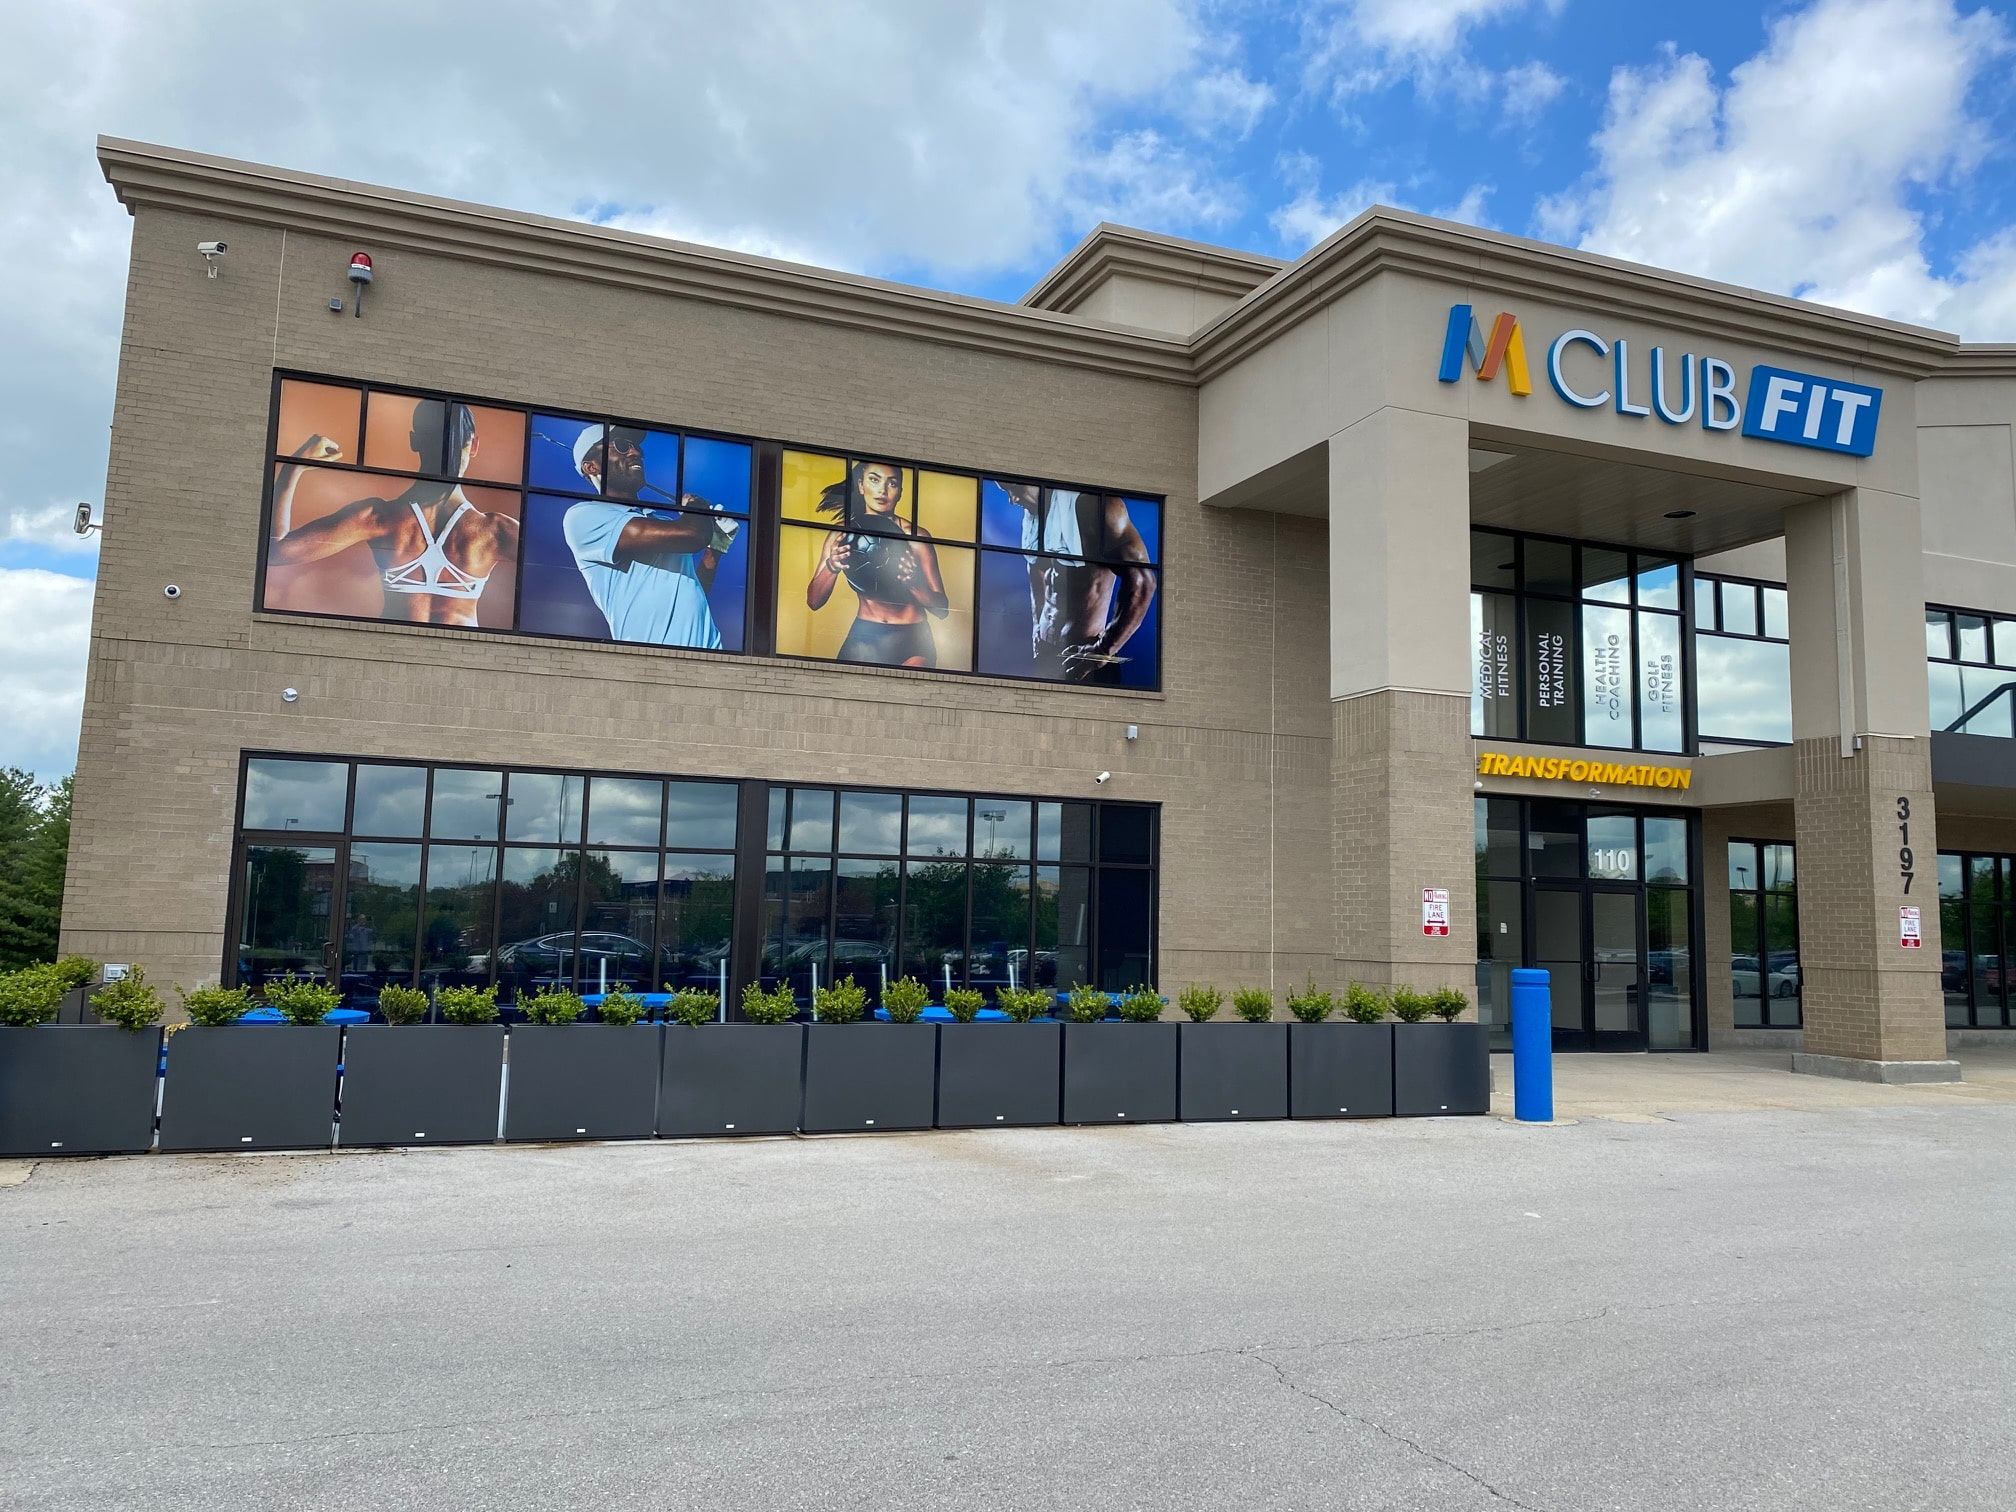 M Club Fit_Beaumont - Hargett_1